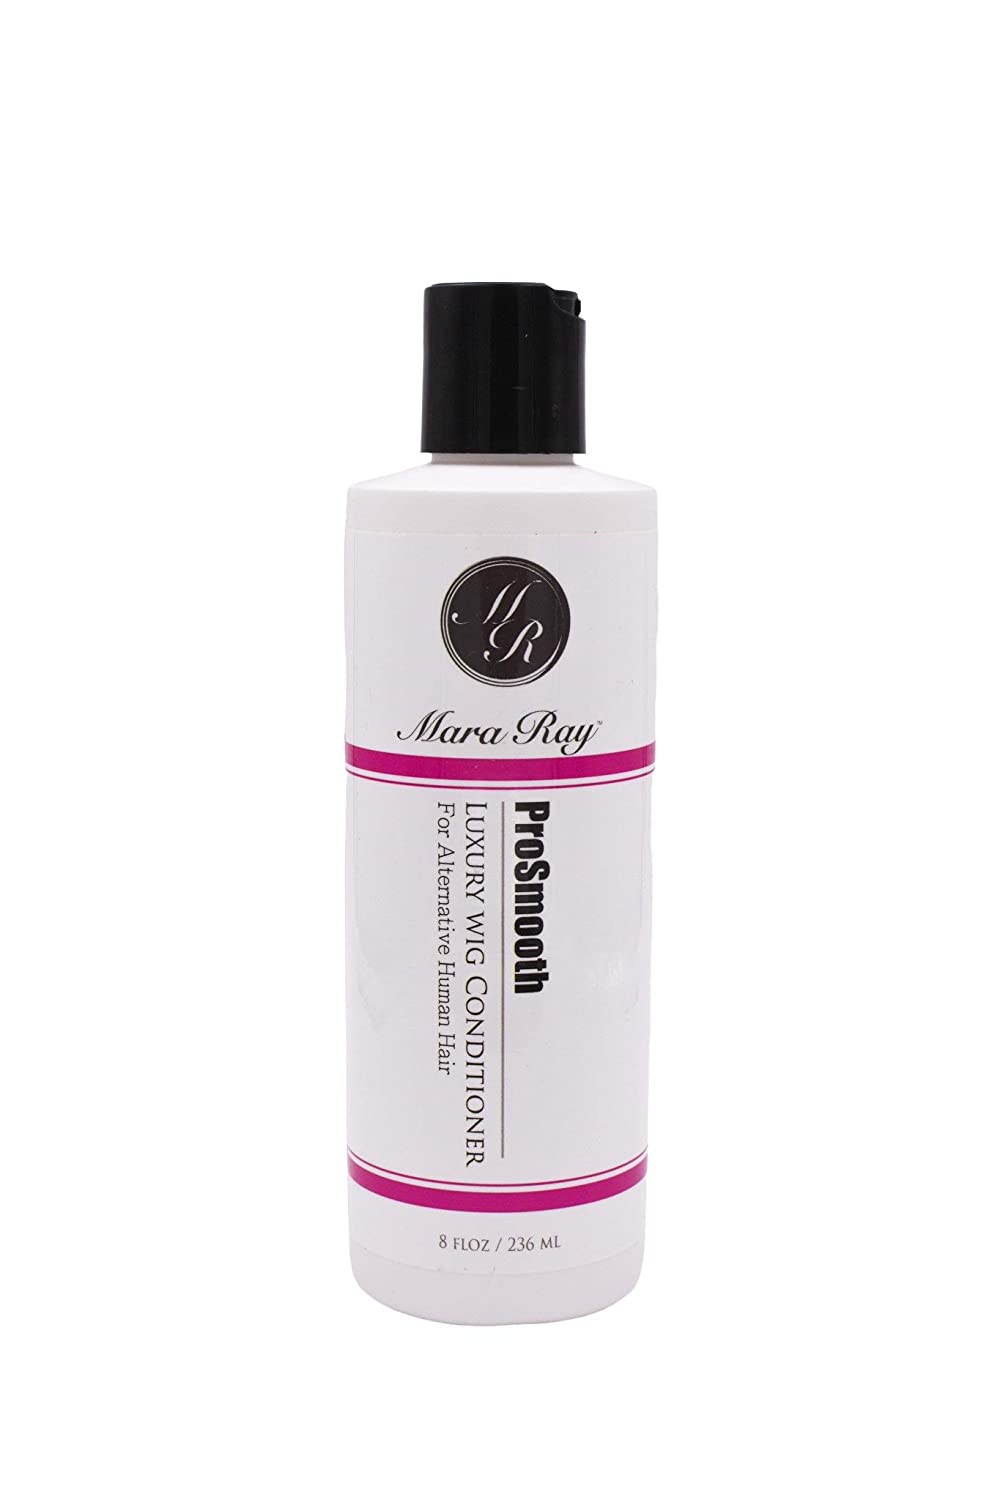 Mara Ray Pro Smooth Luxury Max 49% OFF Conditioner Wig Care Hair 8oz low-pricing Human